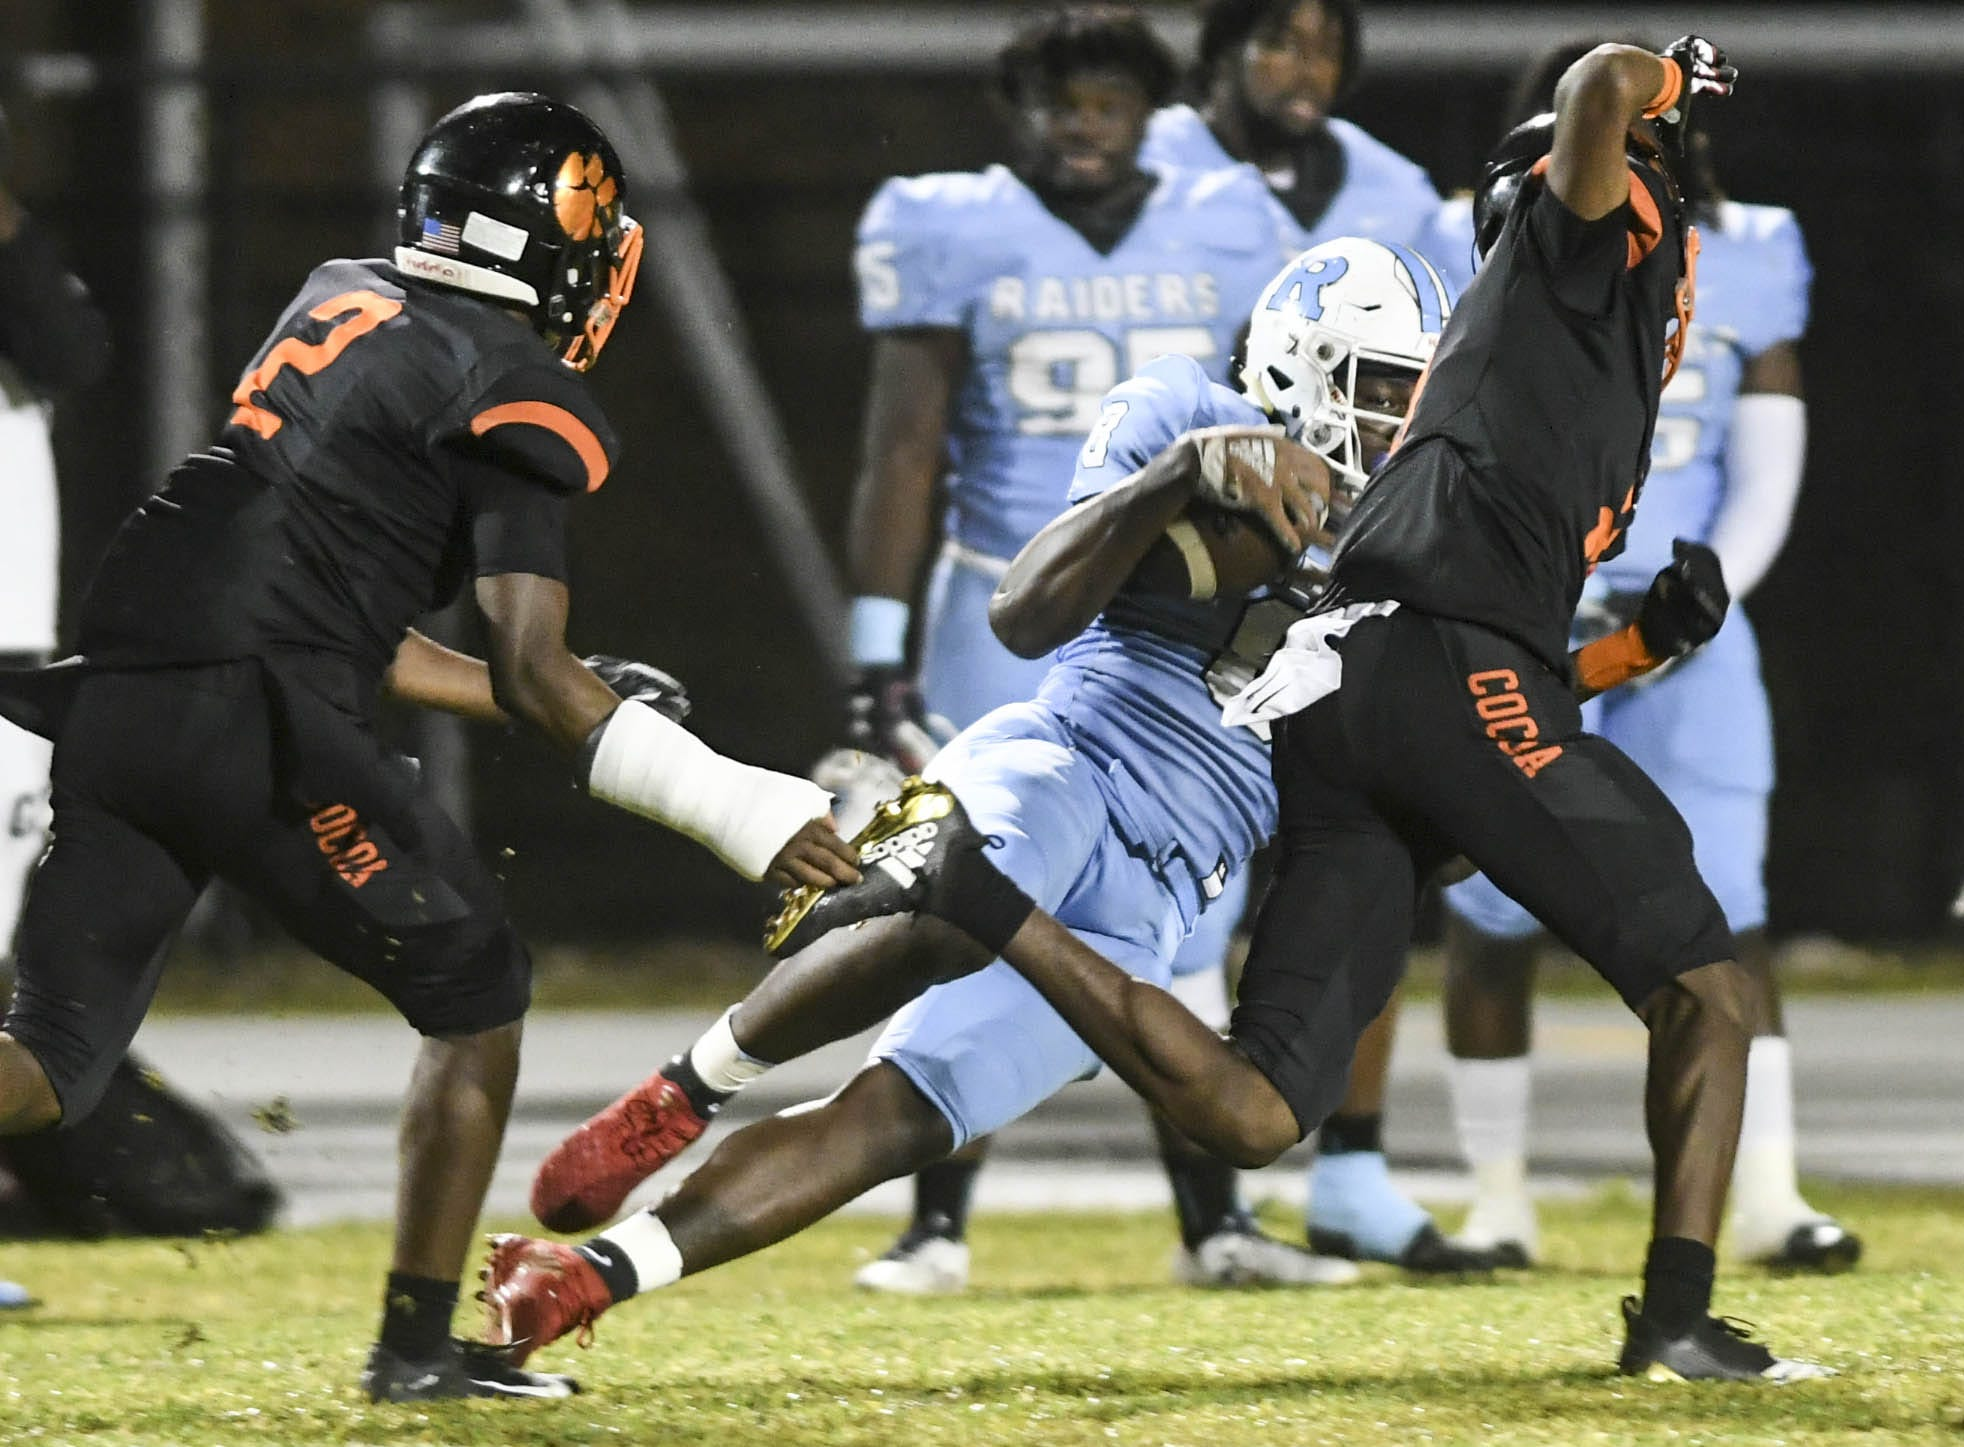 OC Brothers of Rockledge catches a long pass during Friday's game against Cocoa.